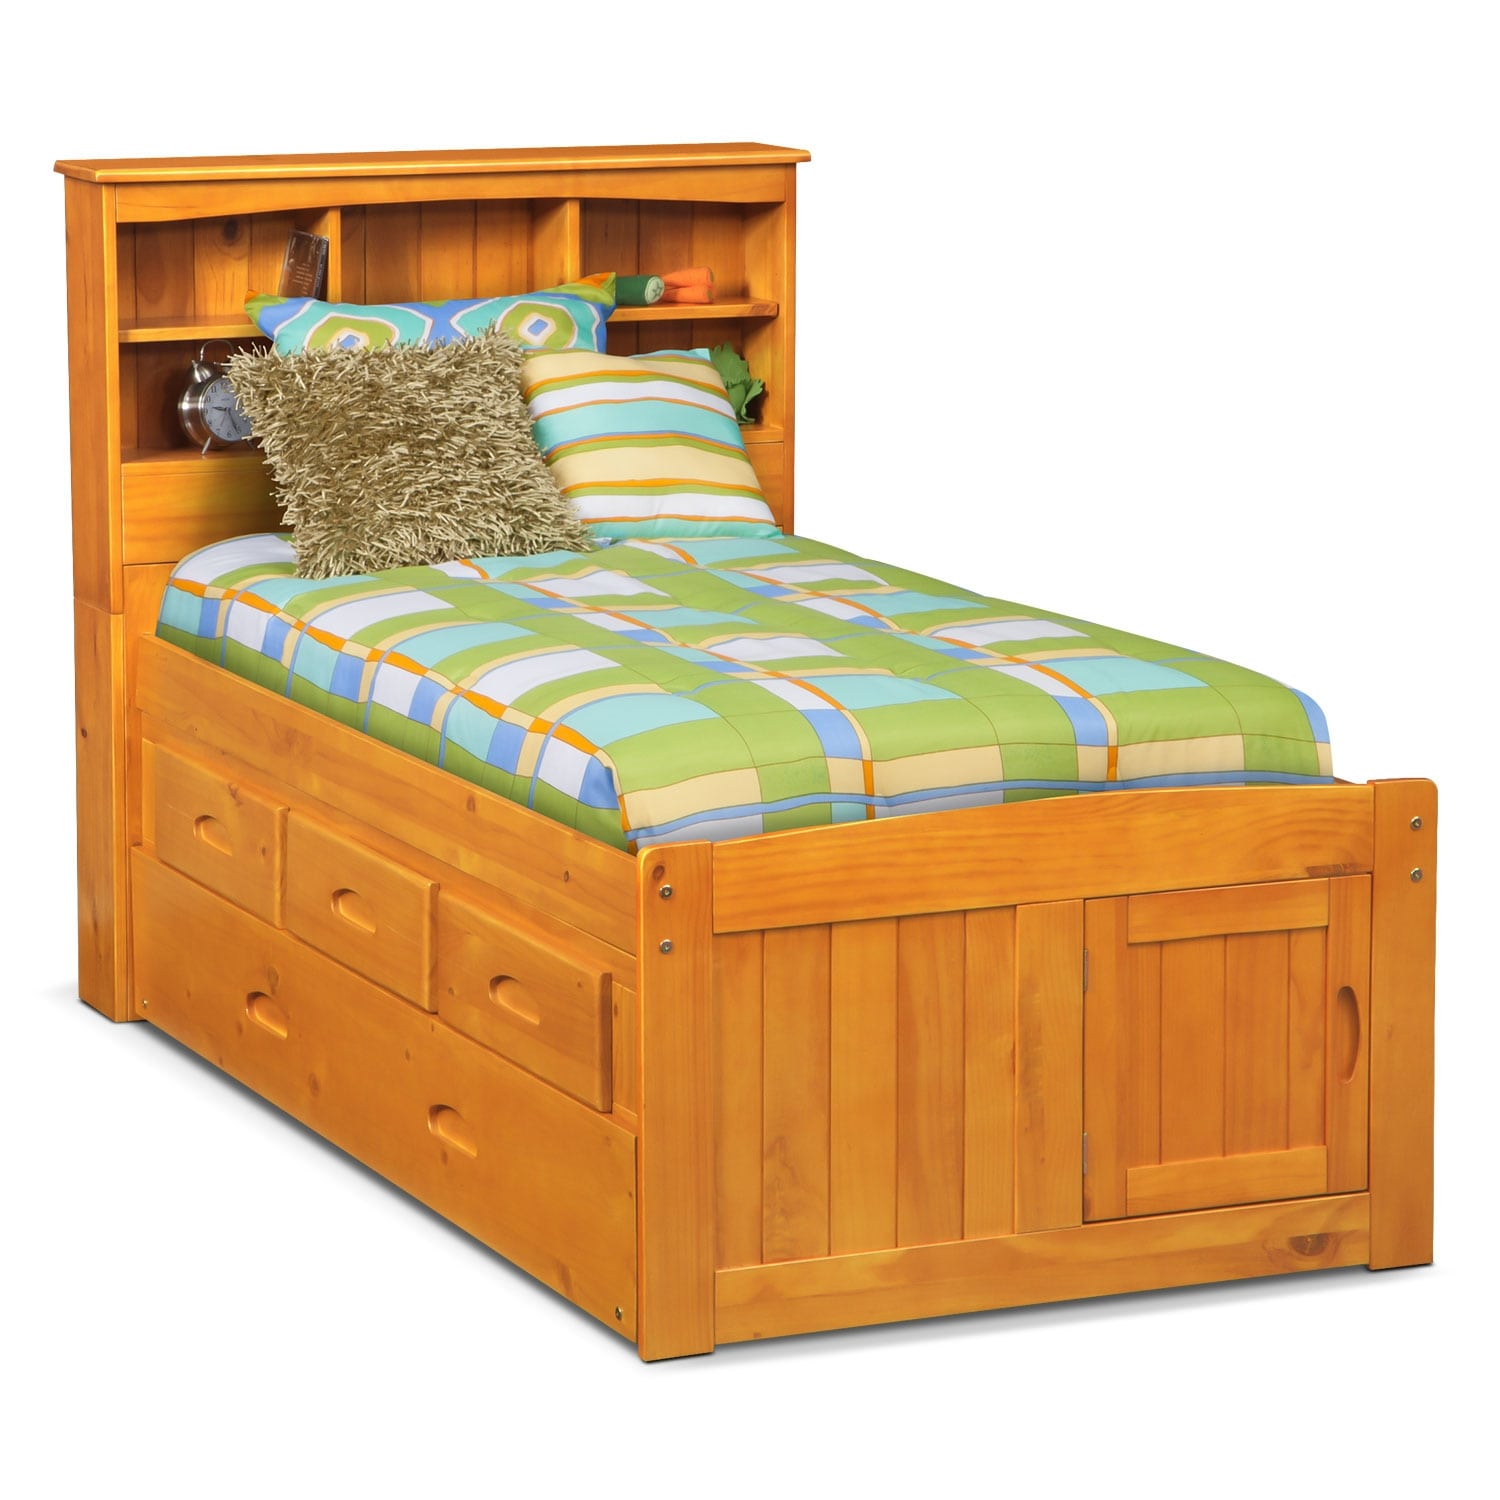 Ranger Pine Full Bookcase Bed with 3-Drawer Storage & Trundle